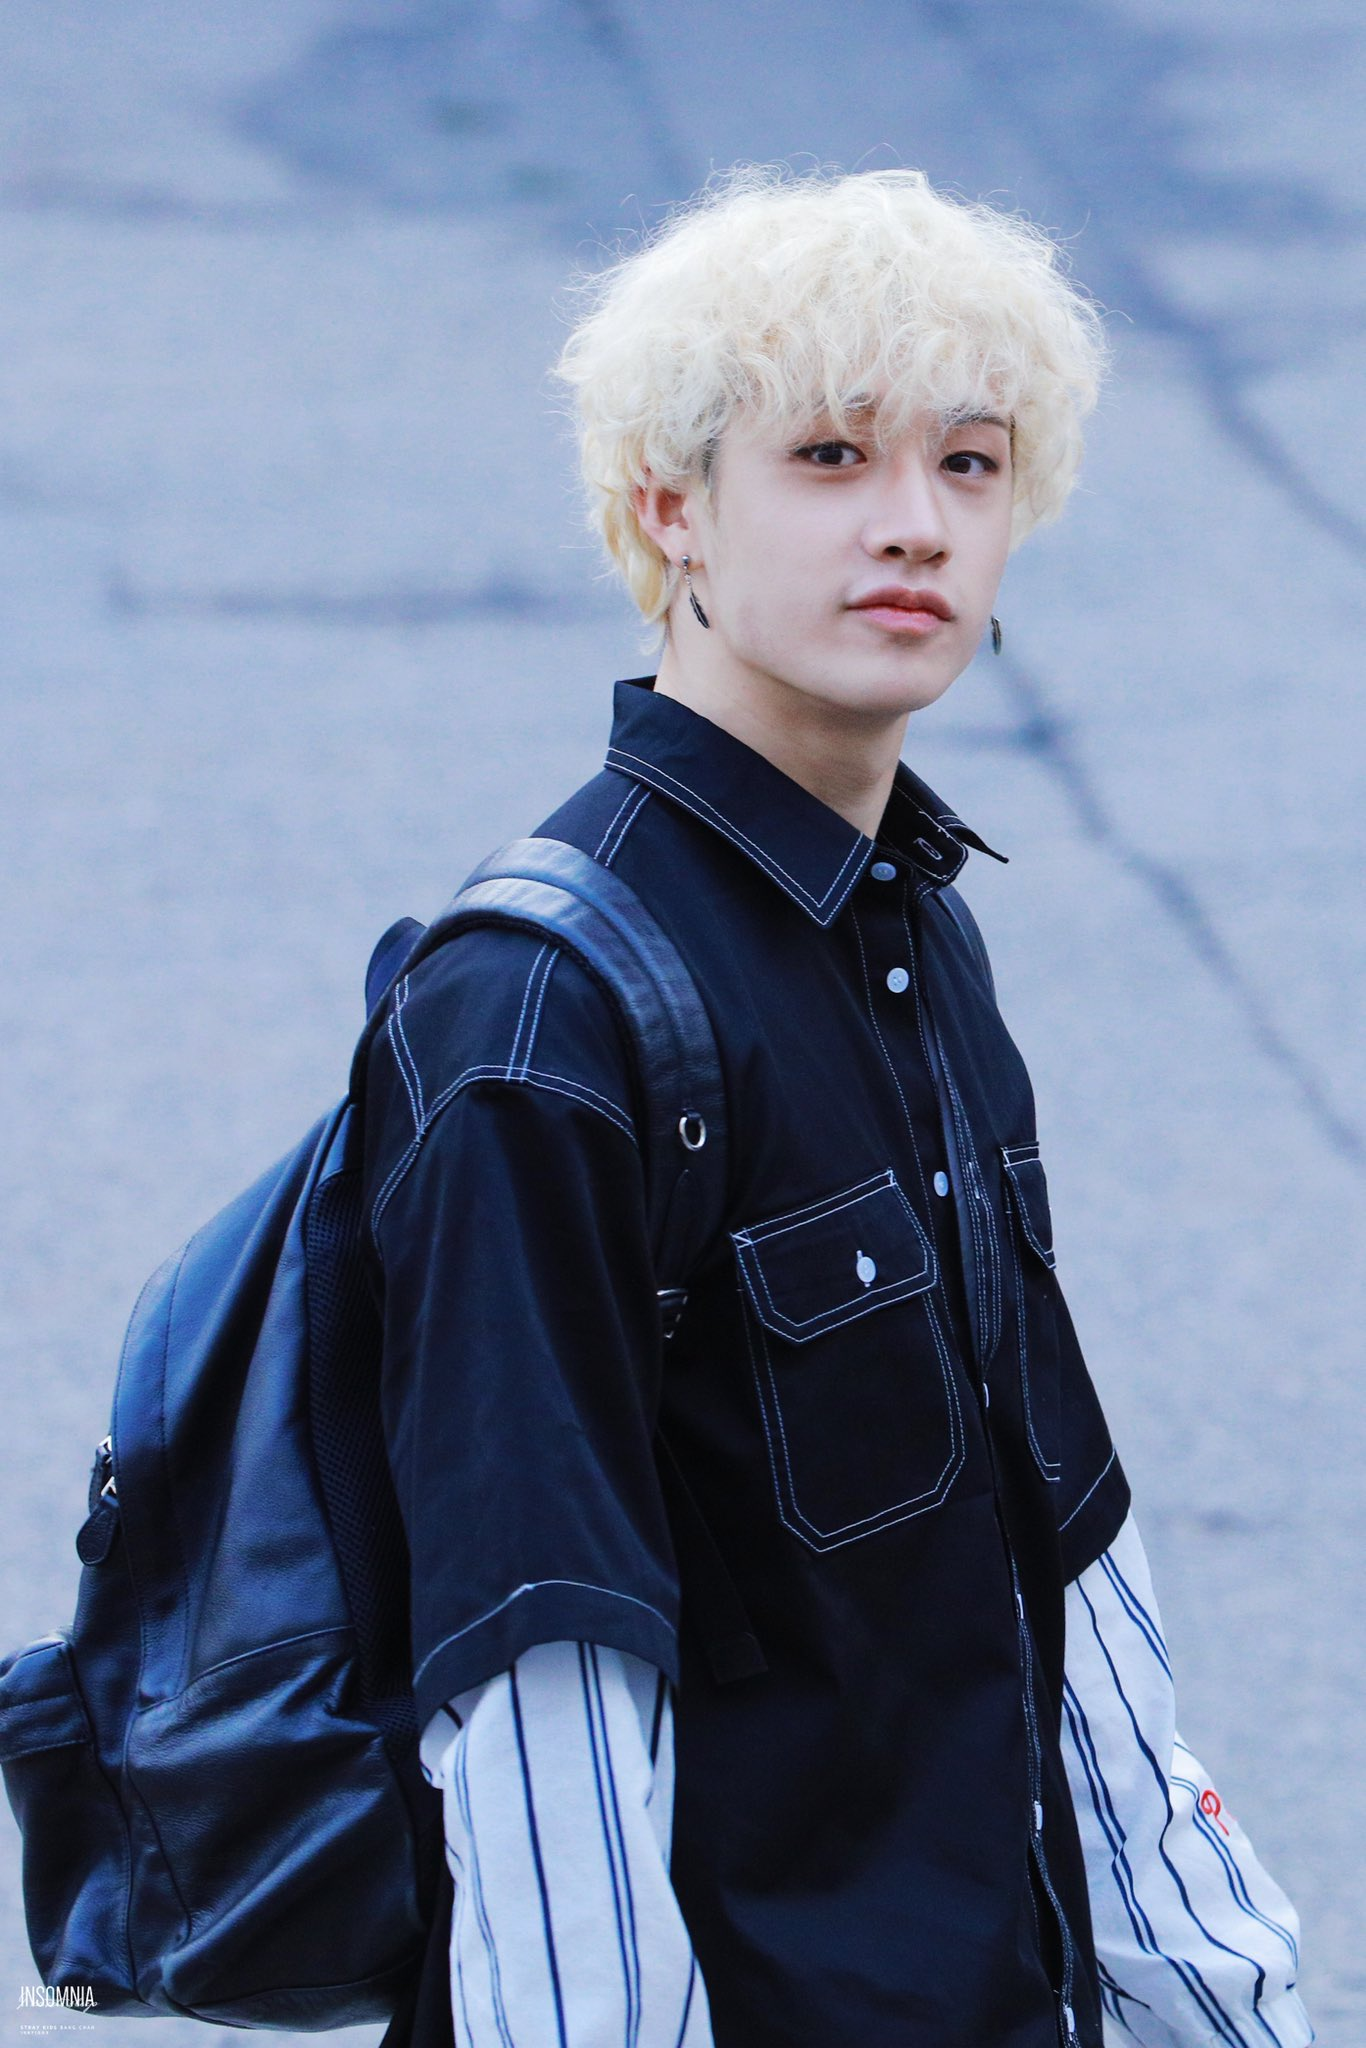 190412 뮤뱅   #방찬 #BangChan #스트레이키즈 #StrayKids #CB97 #Clé1_MIROH #MIROH @Stray_Kids https://t.co/E6GAS1alYp